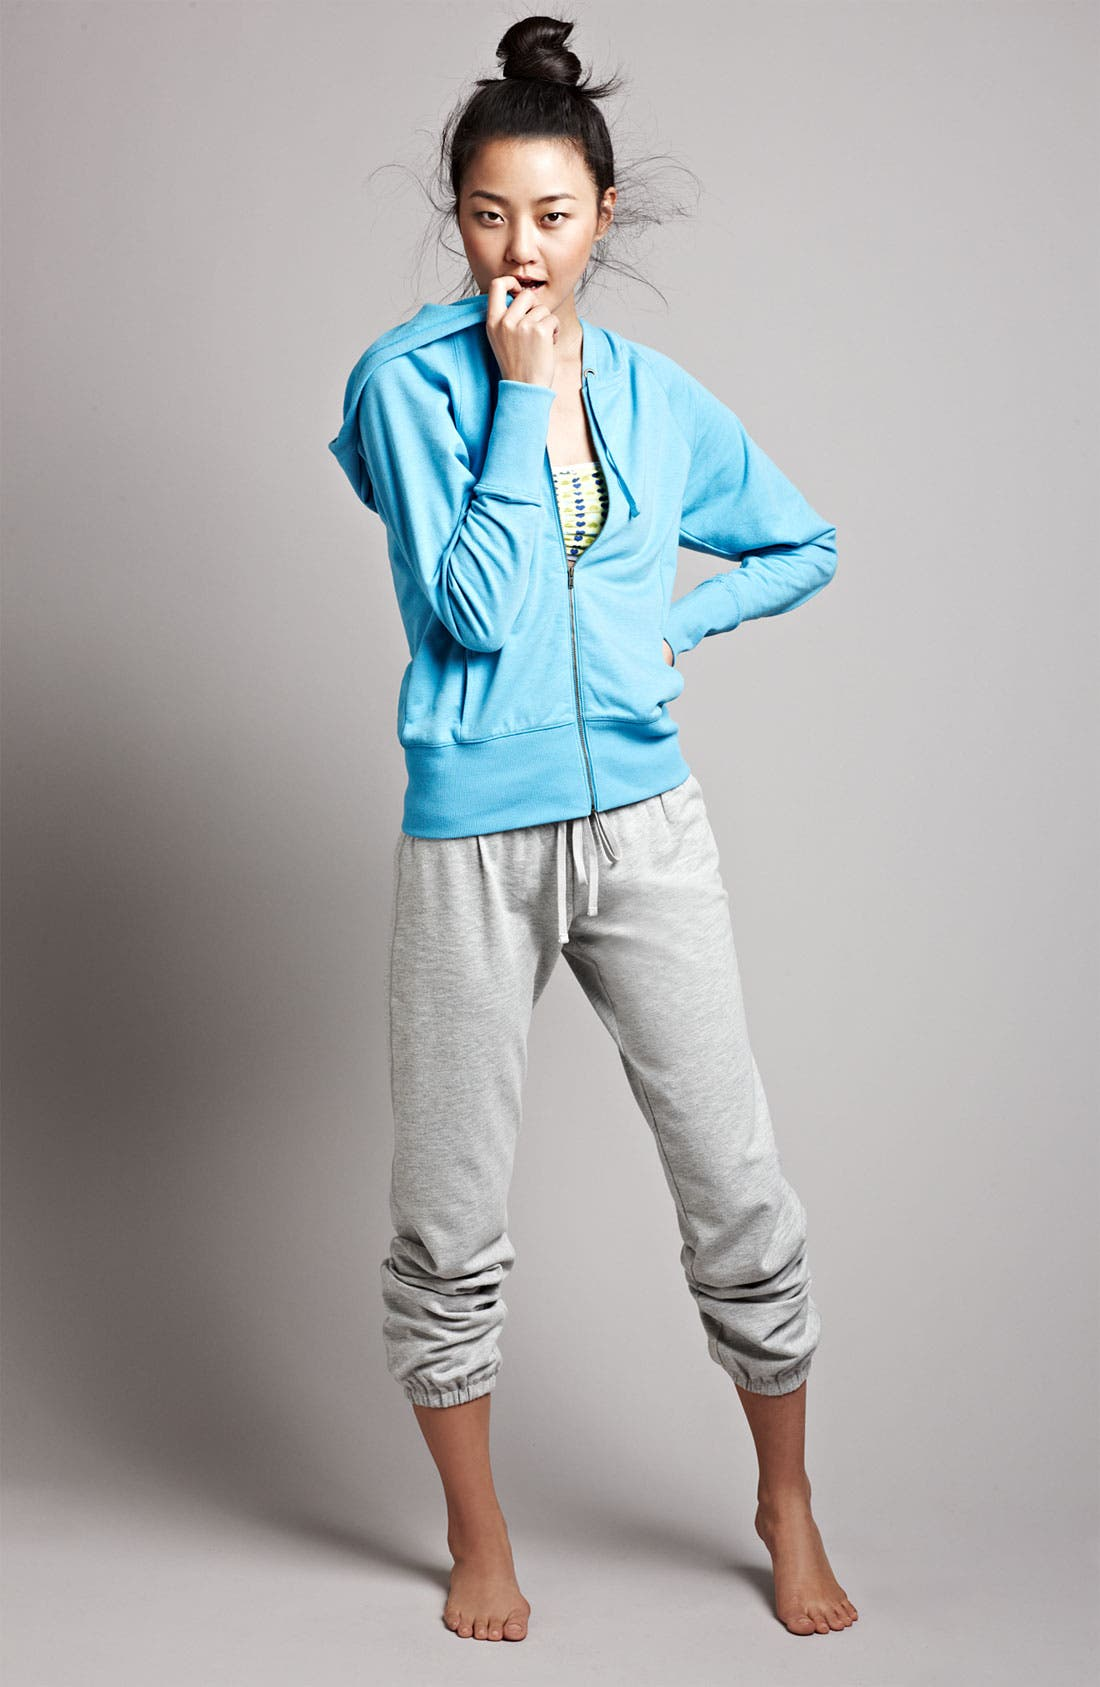 Main Image - Make + Model Hoodie & Pants